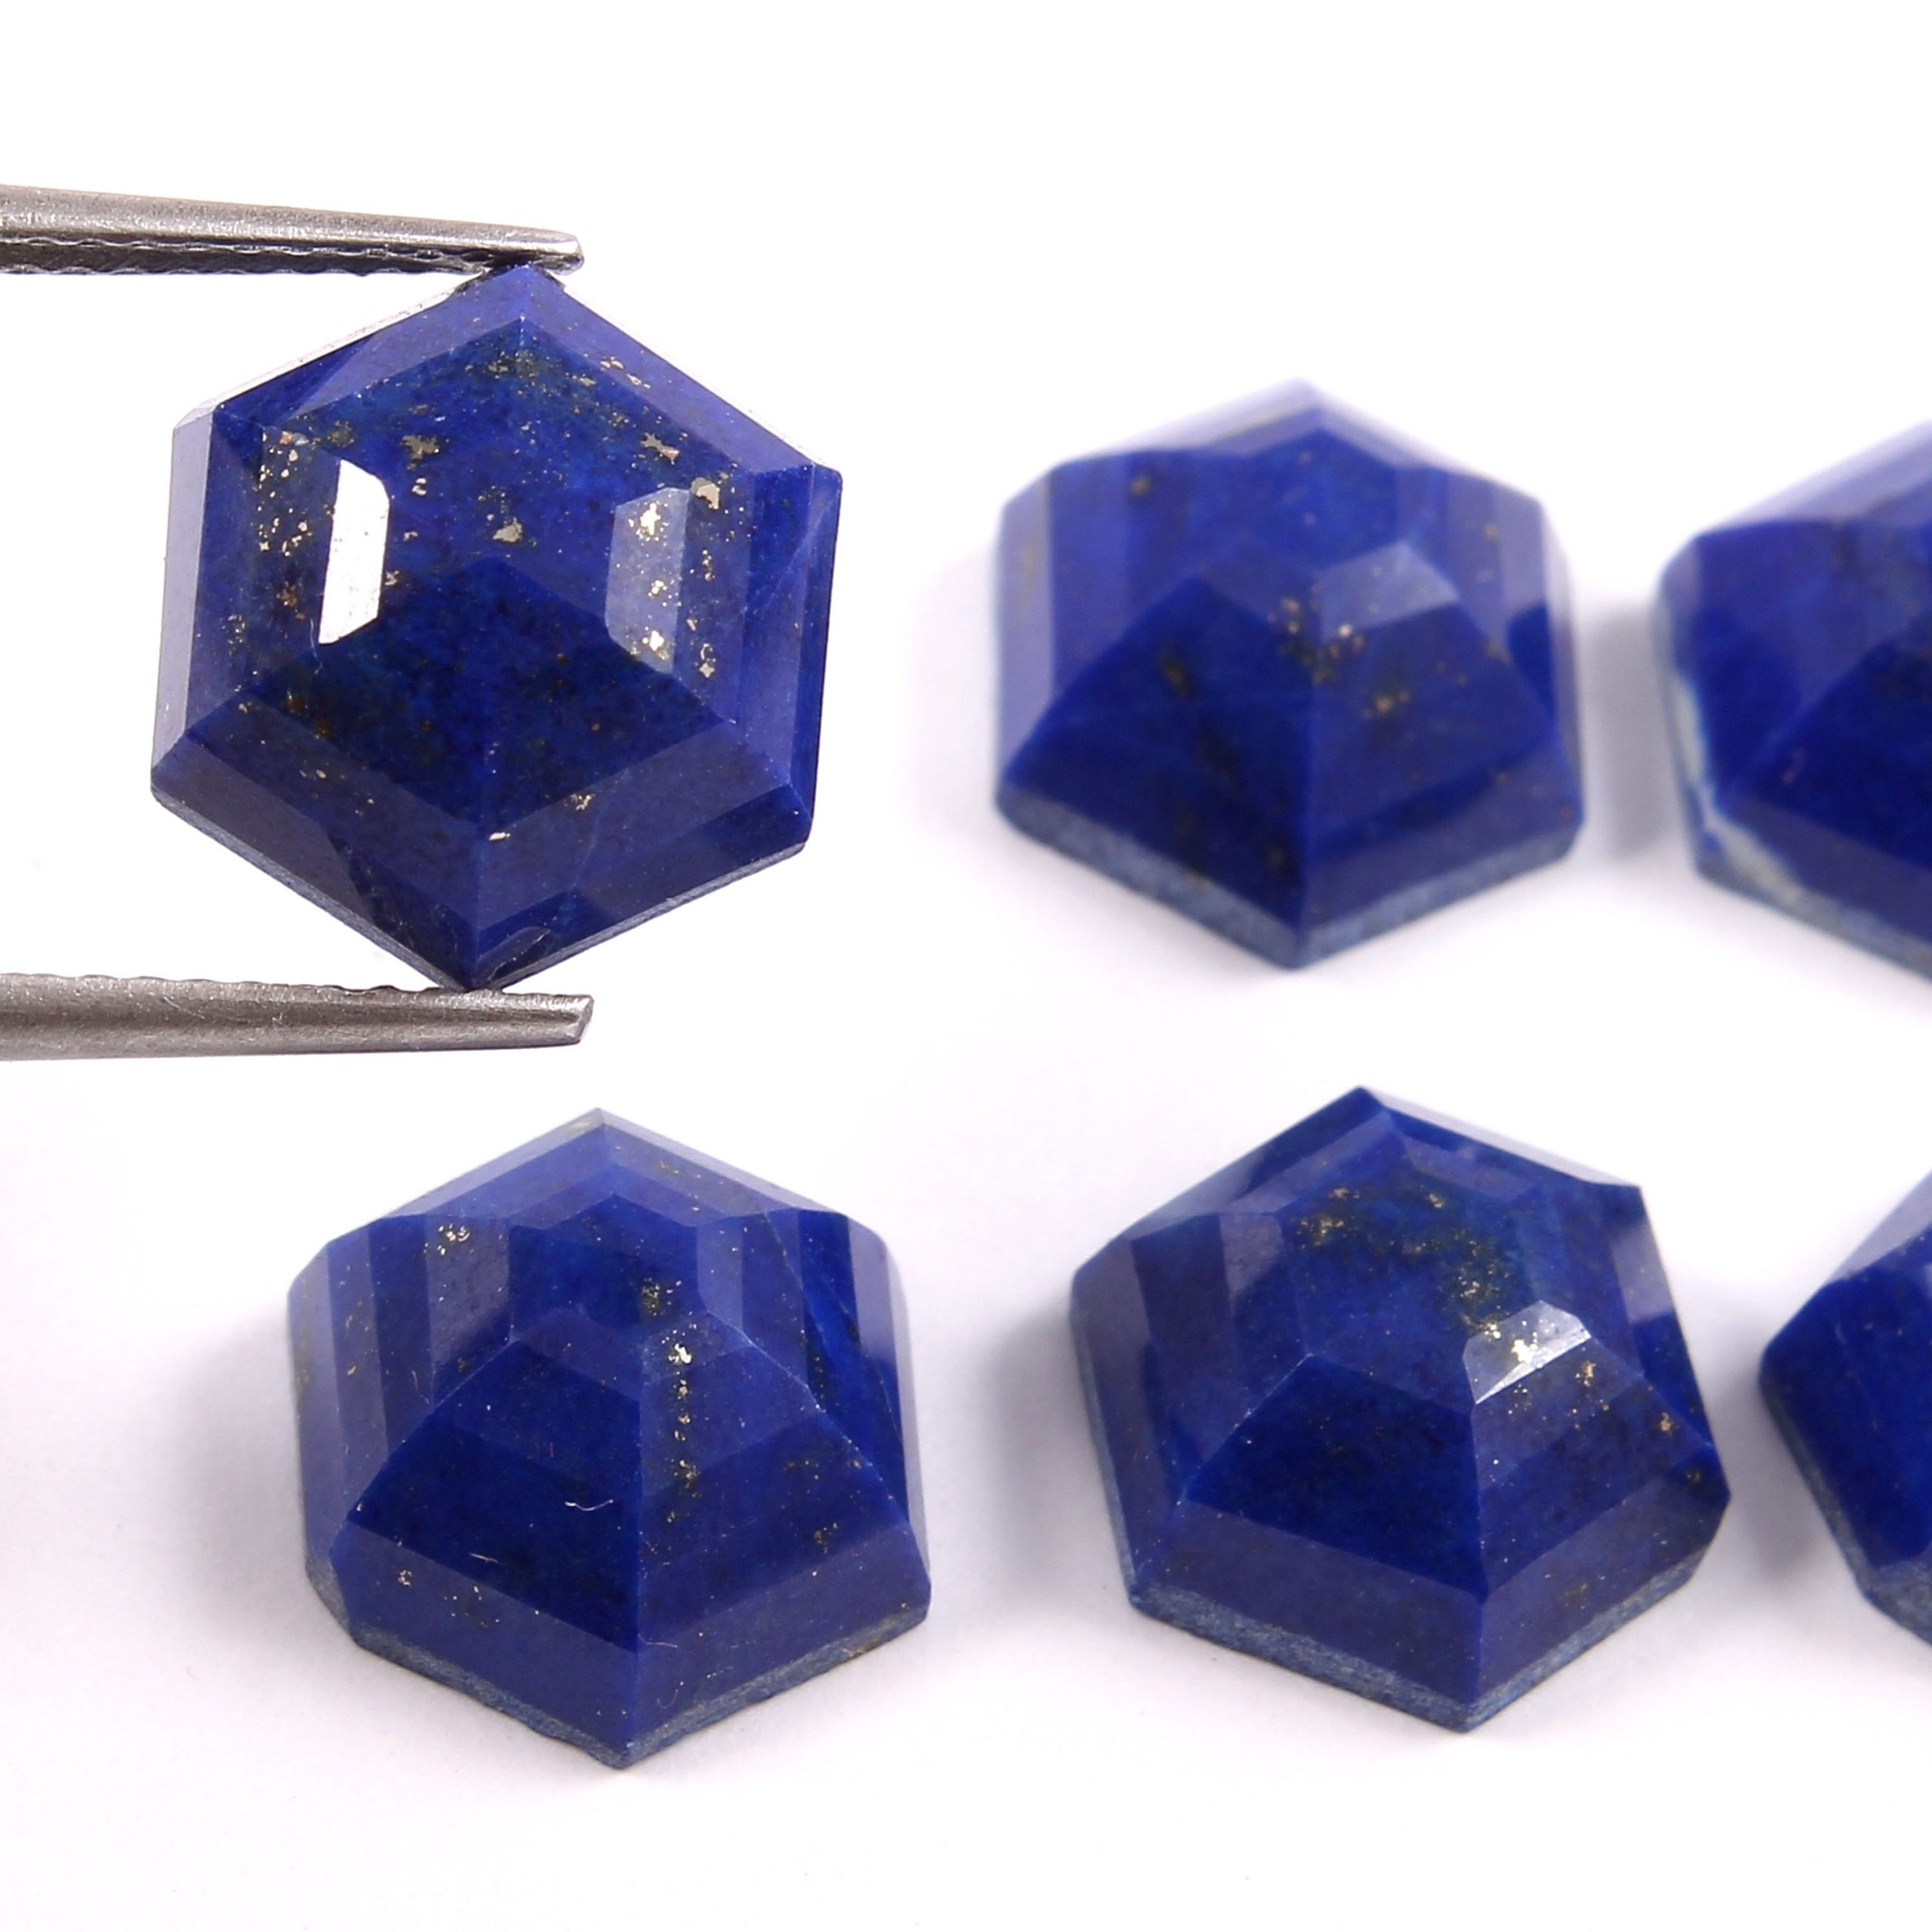 Details about  /Natural Amethyst Gemstone Hexagon Shape Faceted Cabochons Three Pieces Set